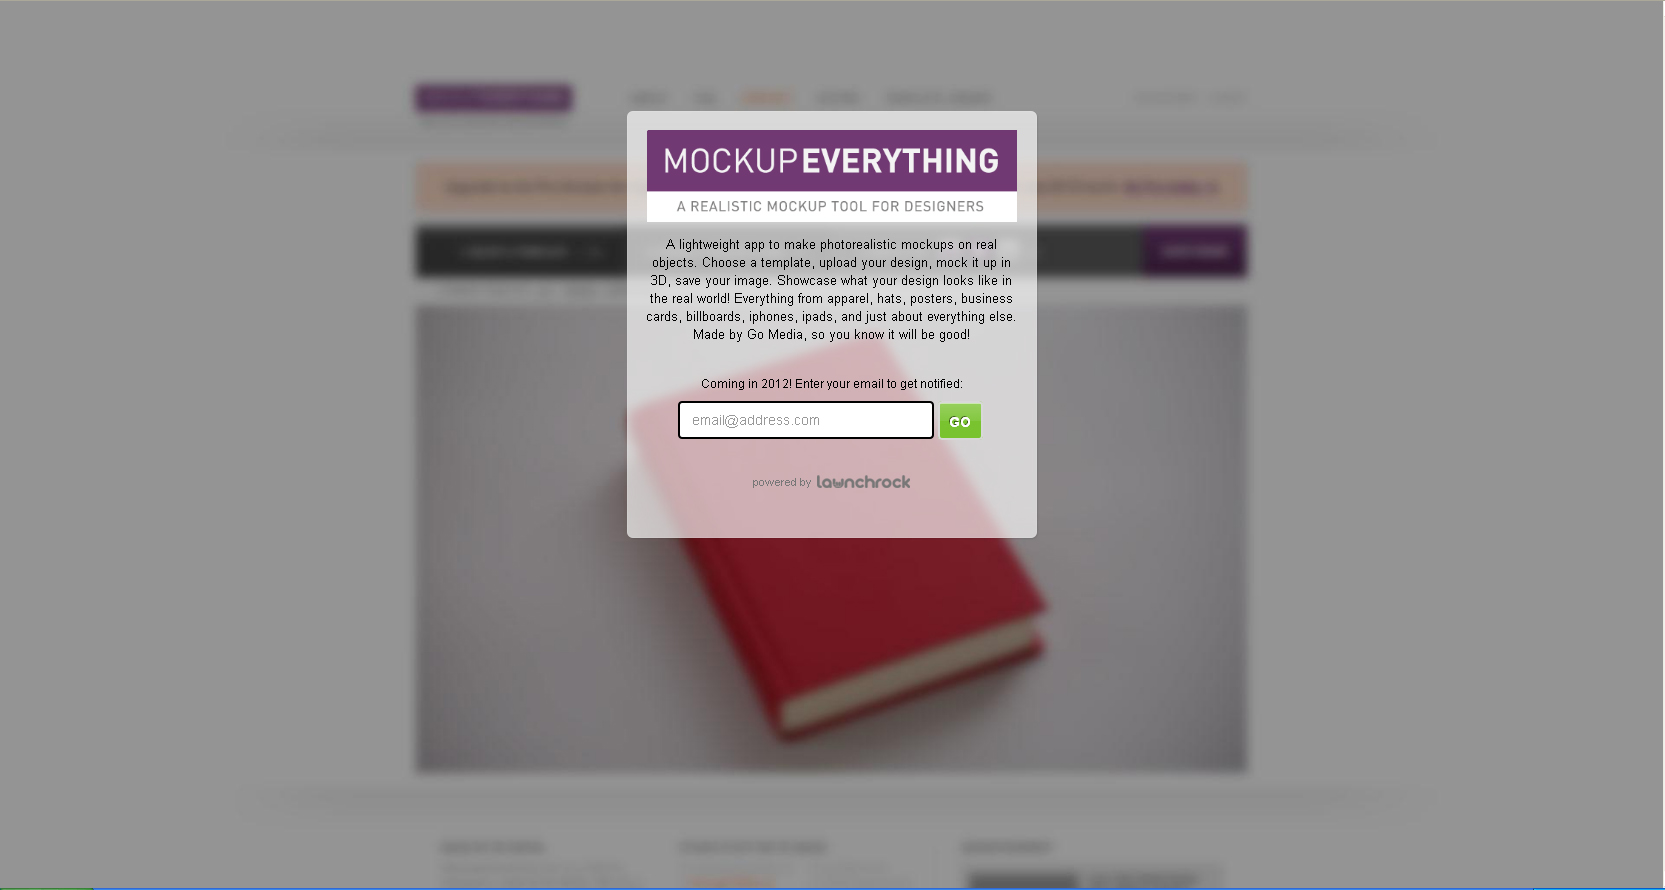 mockupeverything screen shot